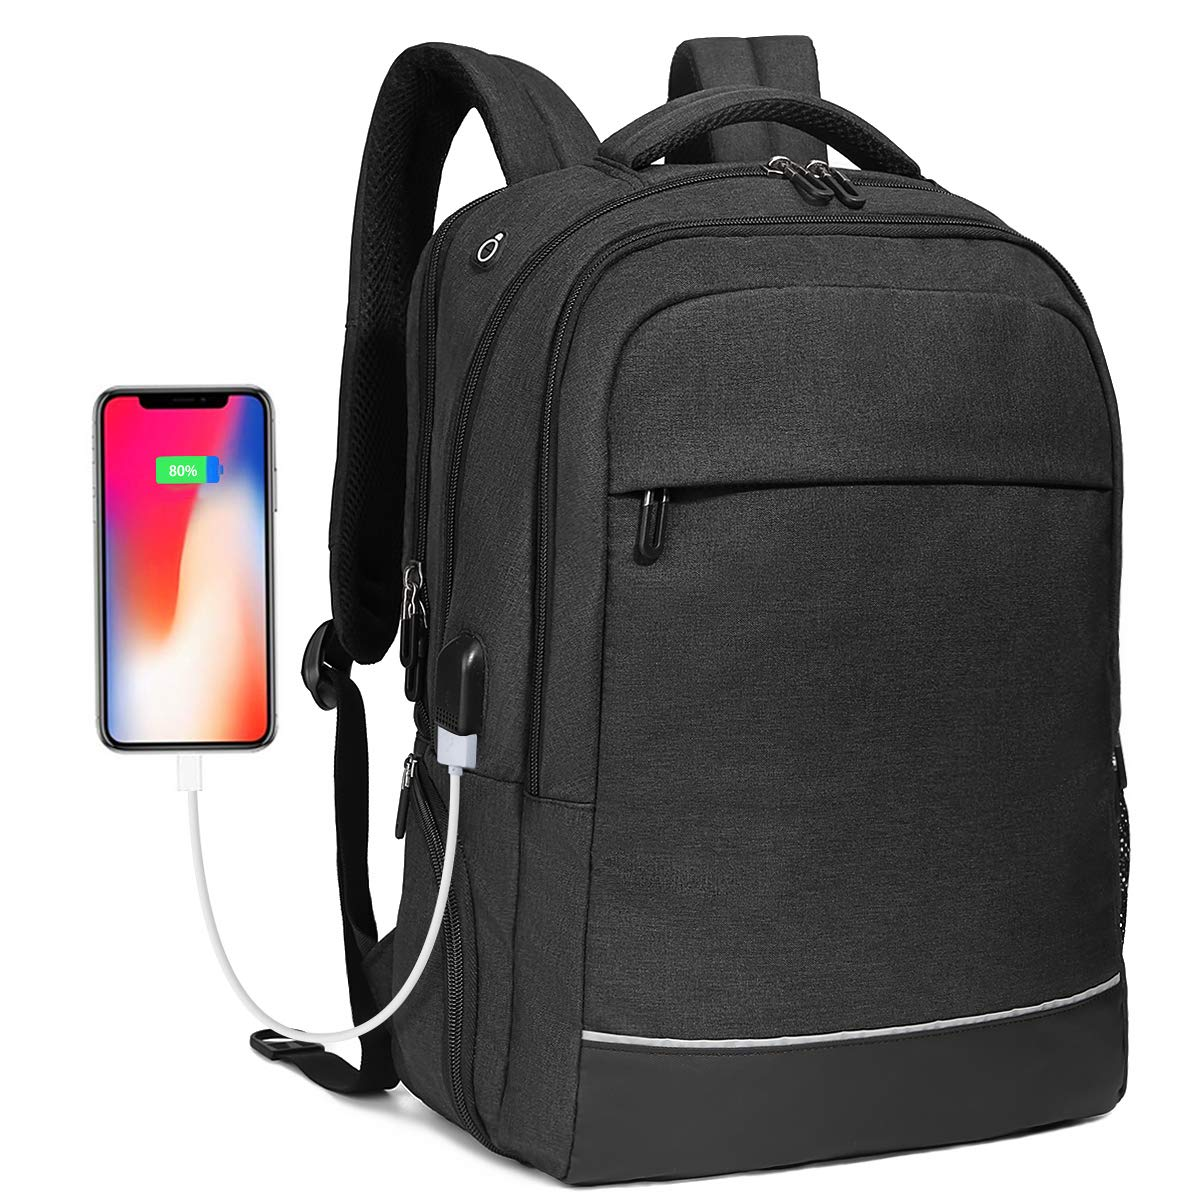 Travel Business Laptop Backpack up to 17.3 inch, Water Resistant College School Computer Bag for Women & Men and Students, Slim Work Backpack for Laptops & Notebook with USB Charging Port (Black) Bropang B8533